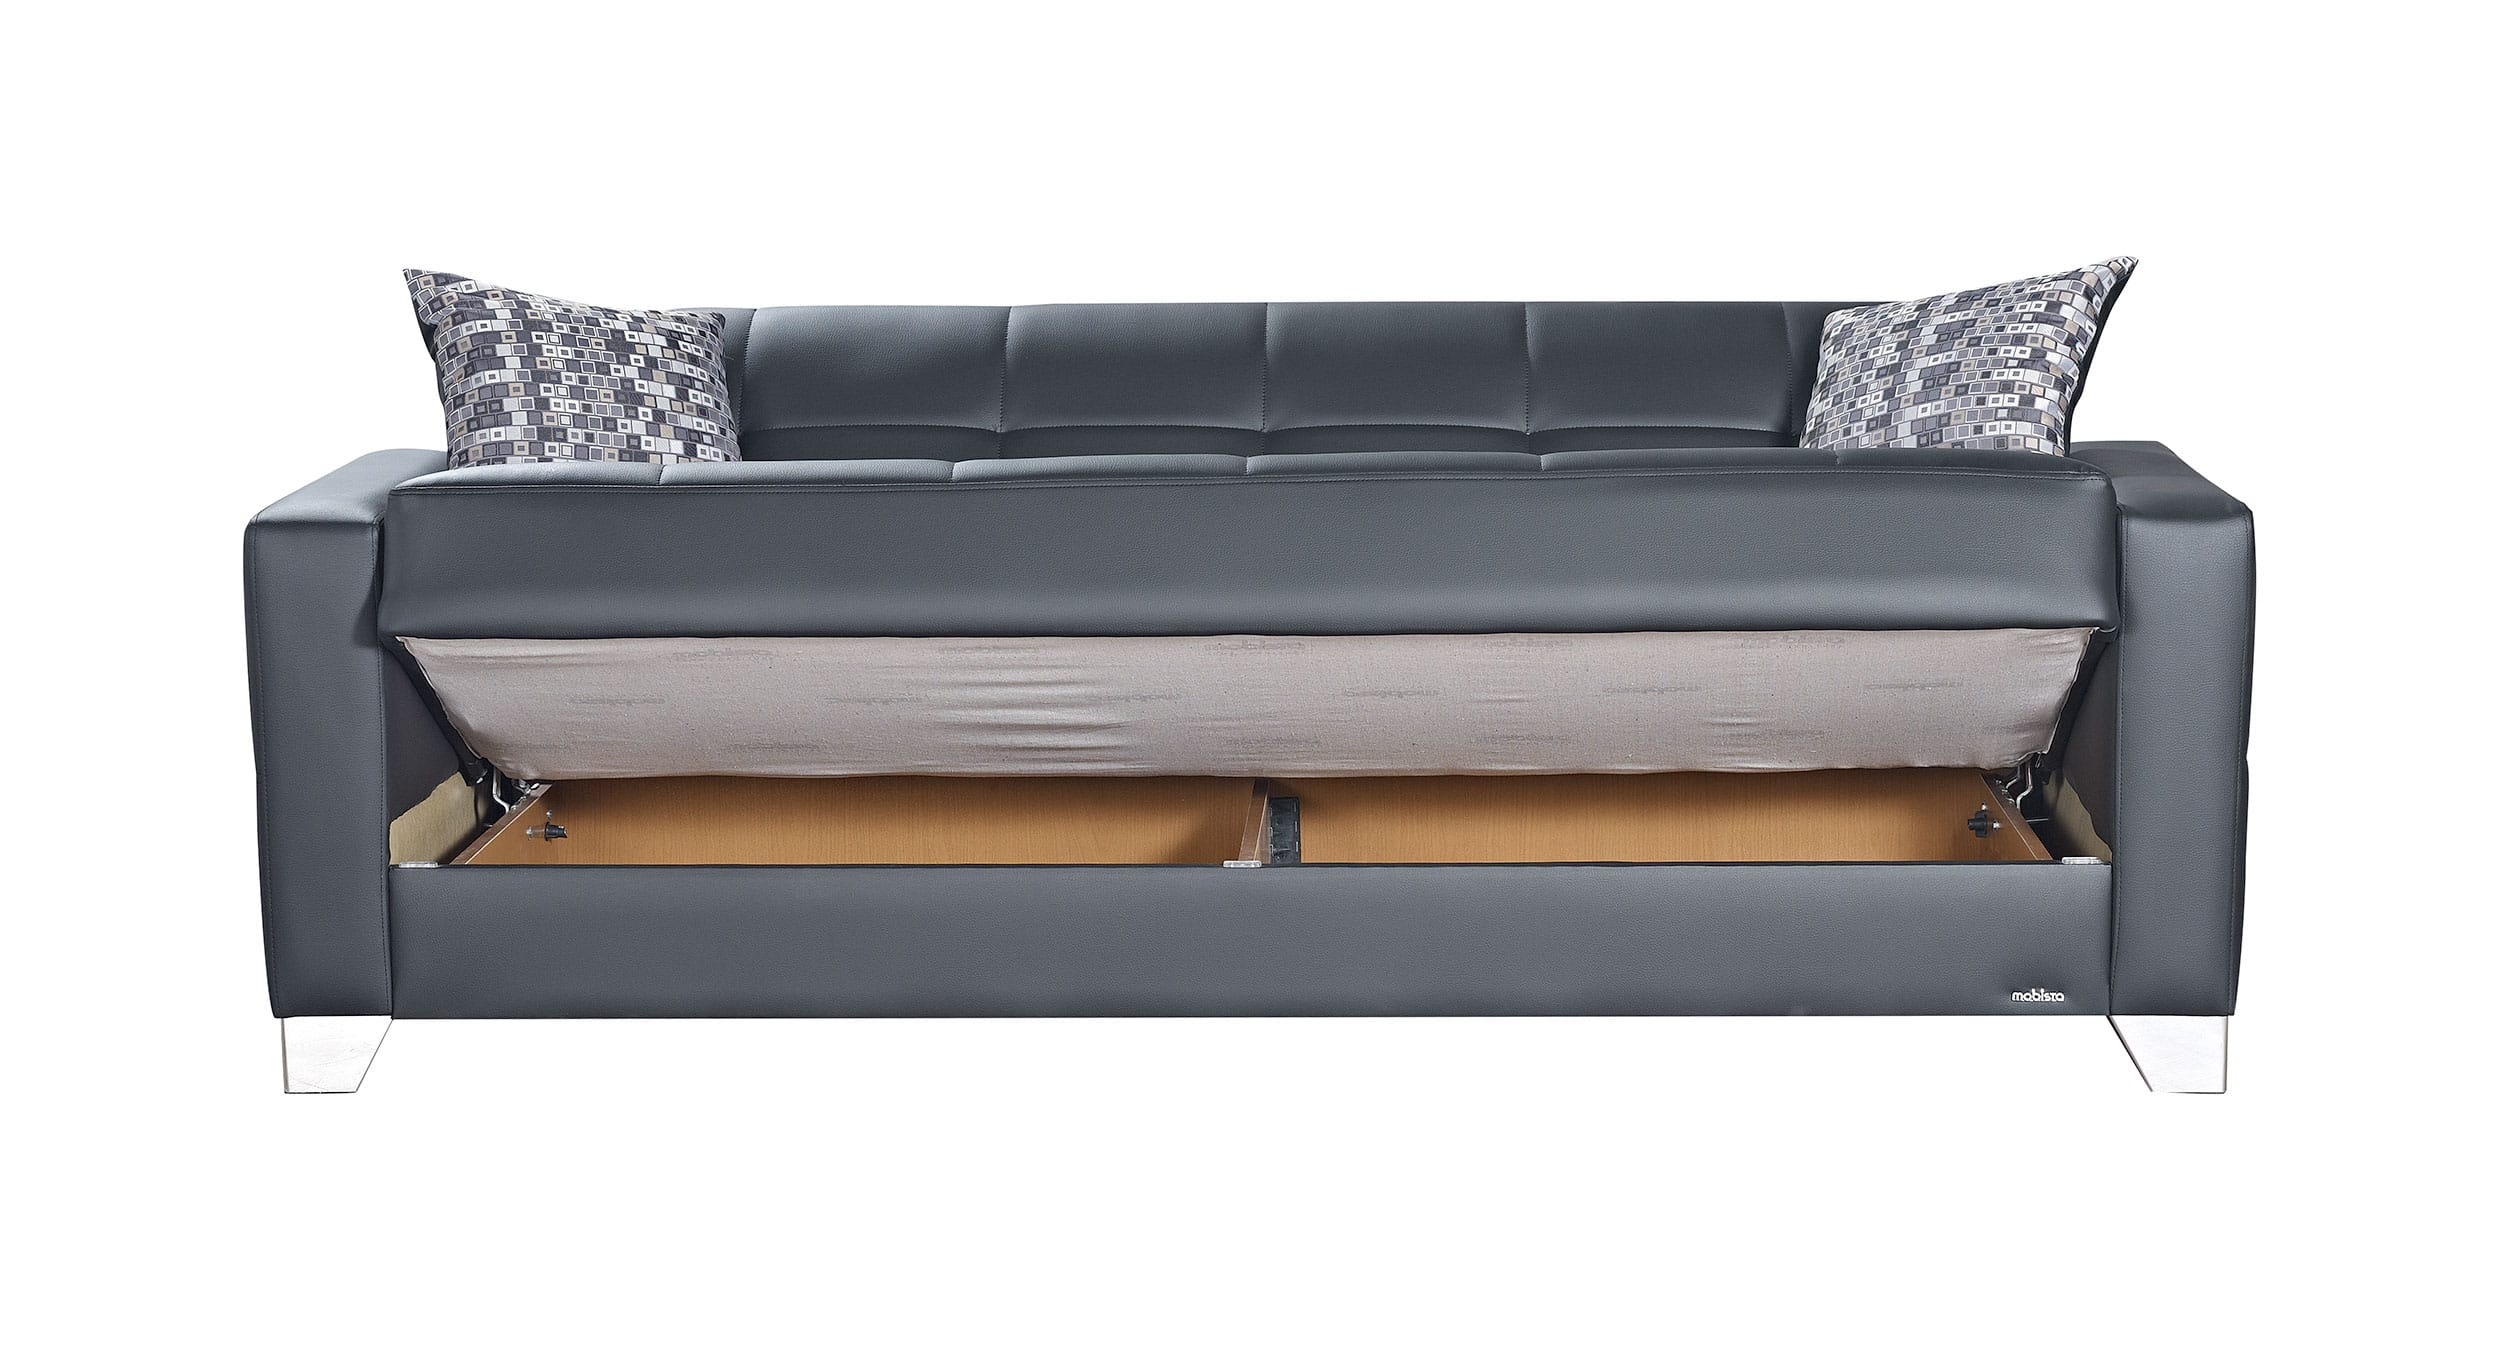 Viva Italia Prestige Black Leatherette Sofa Bed By Mobista